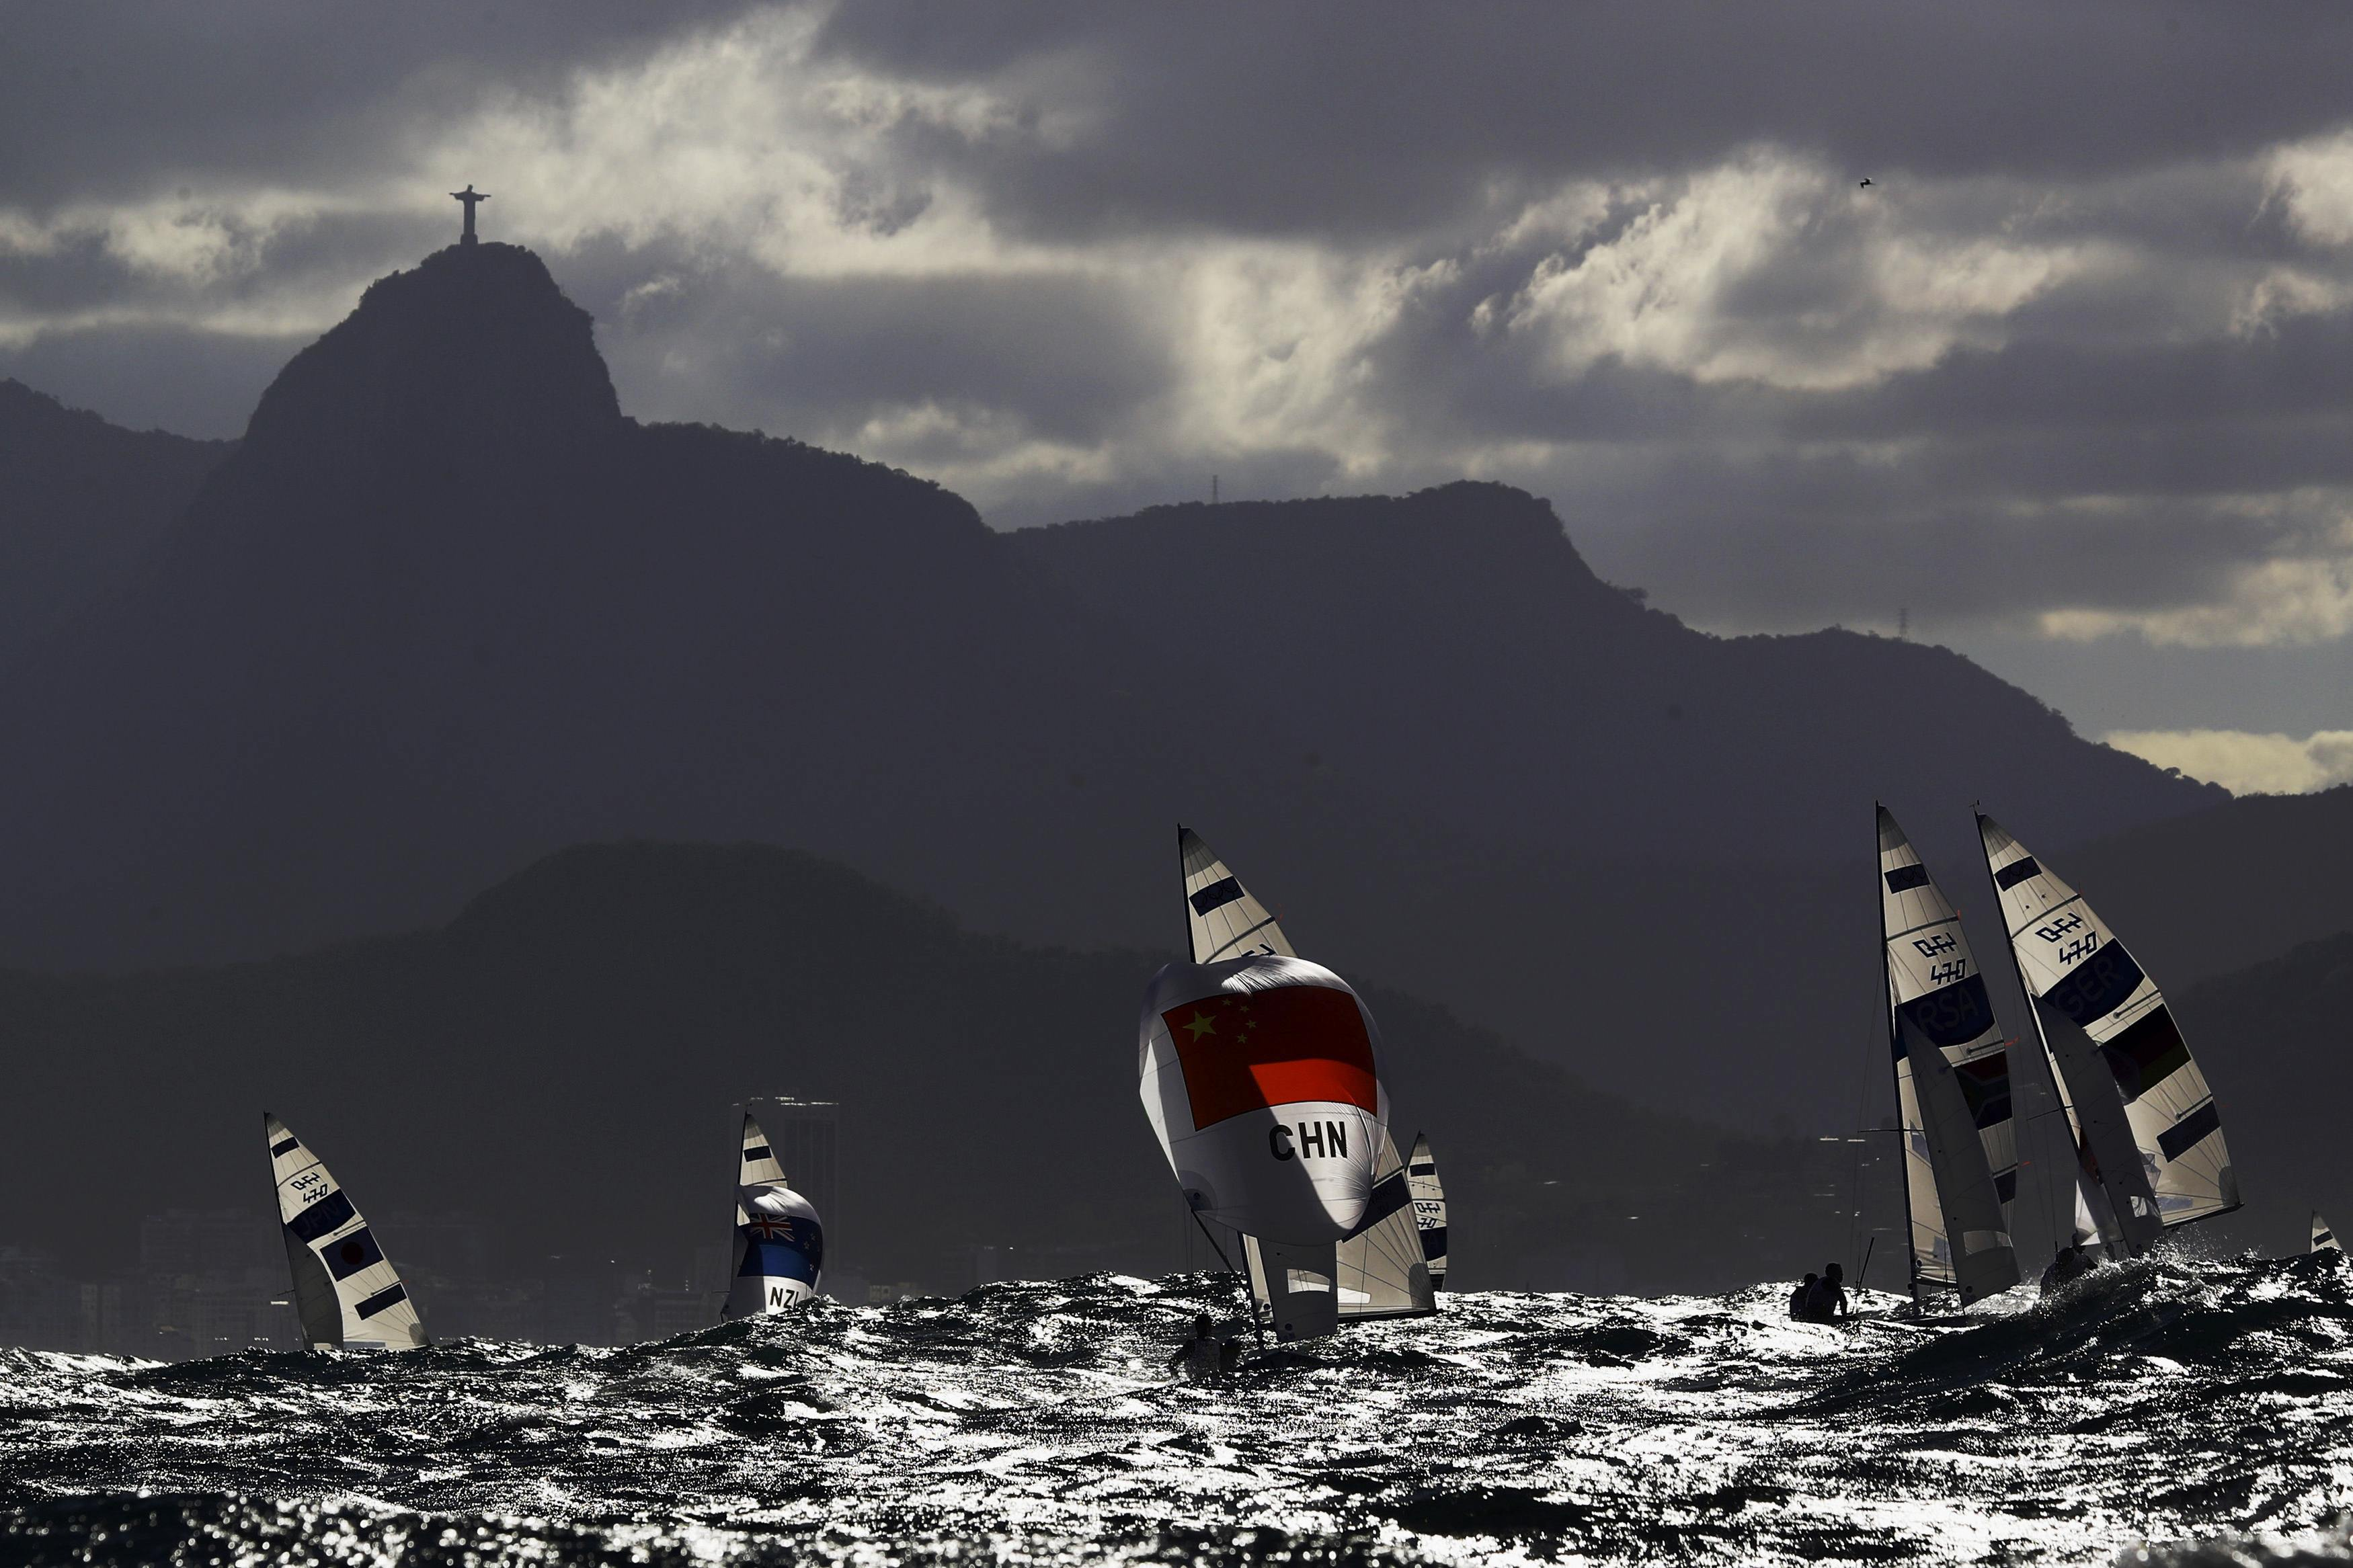 Sailors compete under the Christ the Redeemer statue during Thursday's preliminary round for the men's two-person dinghy at the Rio de Janeiro Olympics.  | REUTERS